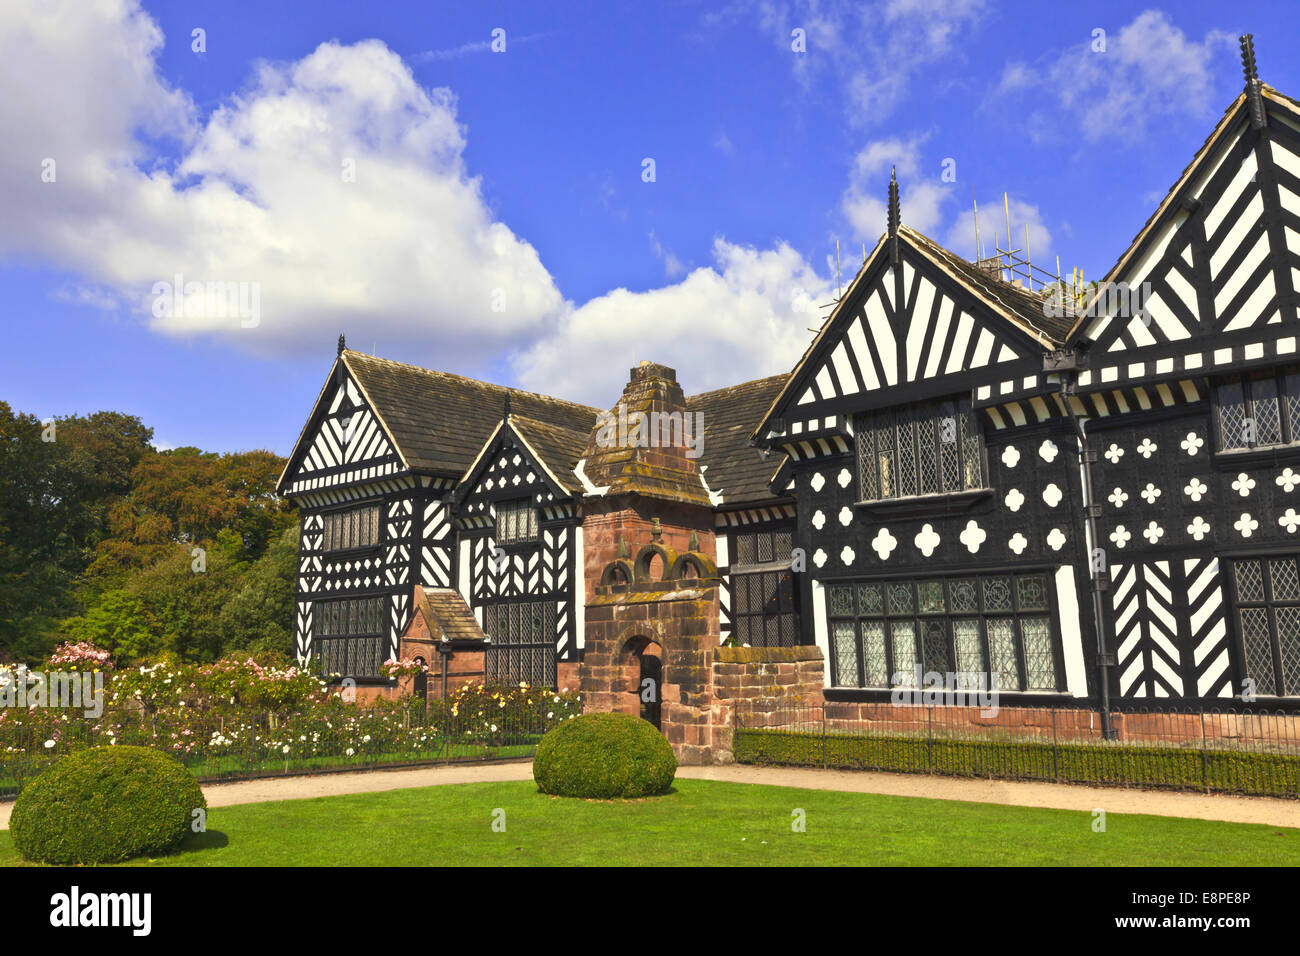 Black and white timber framed medieval mansion house and gardens. - Stock Image